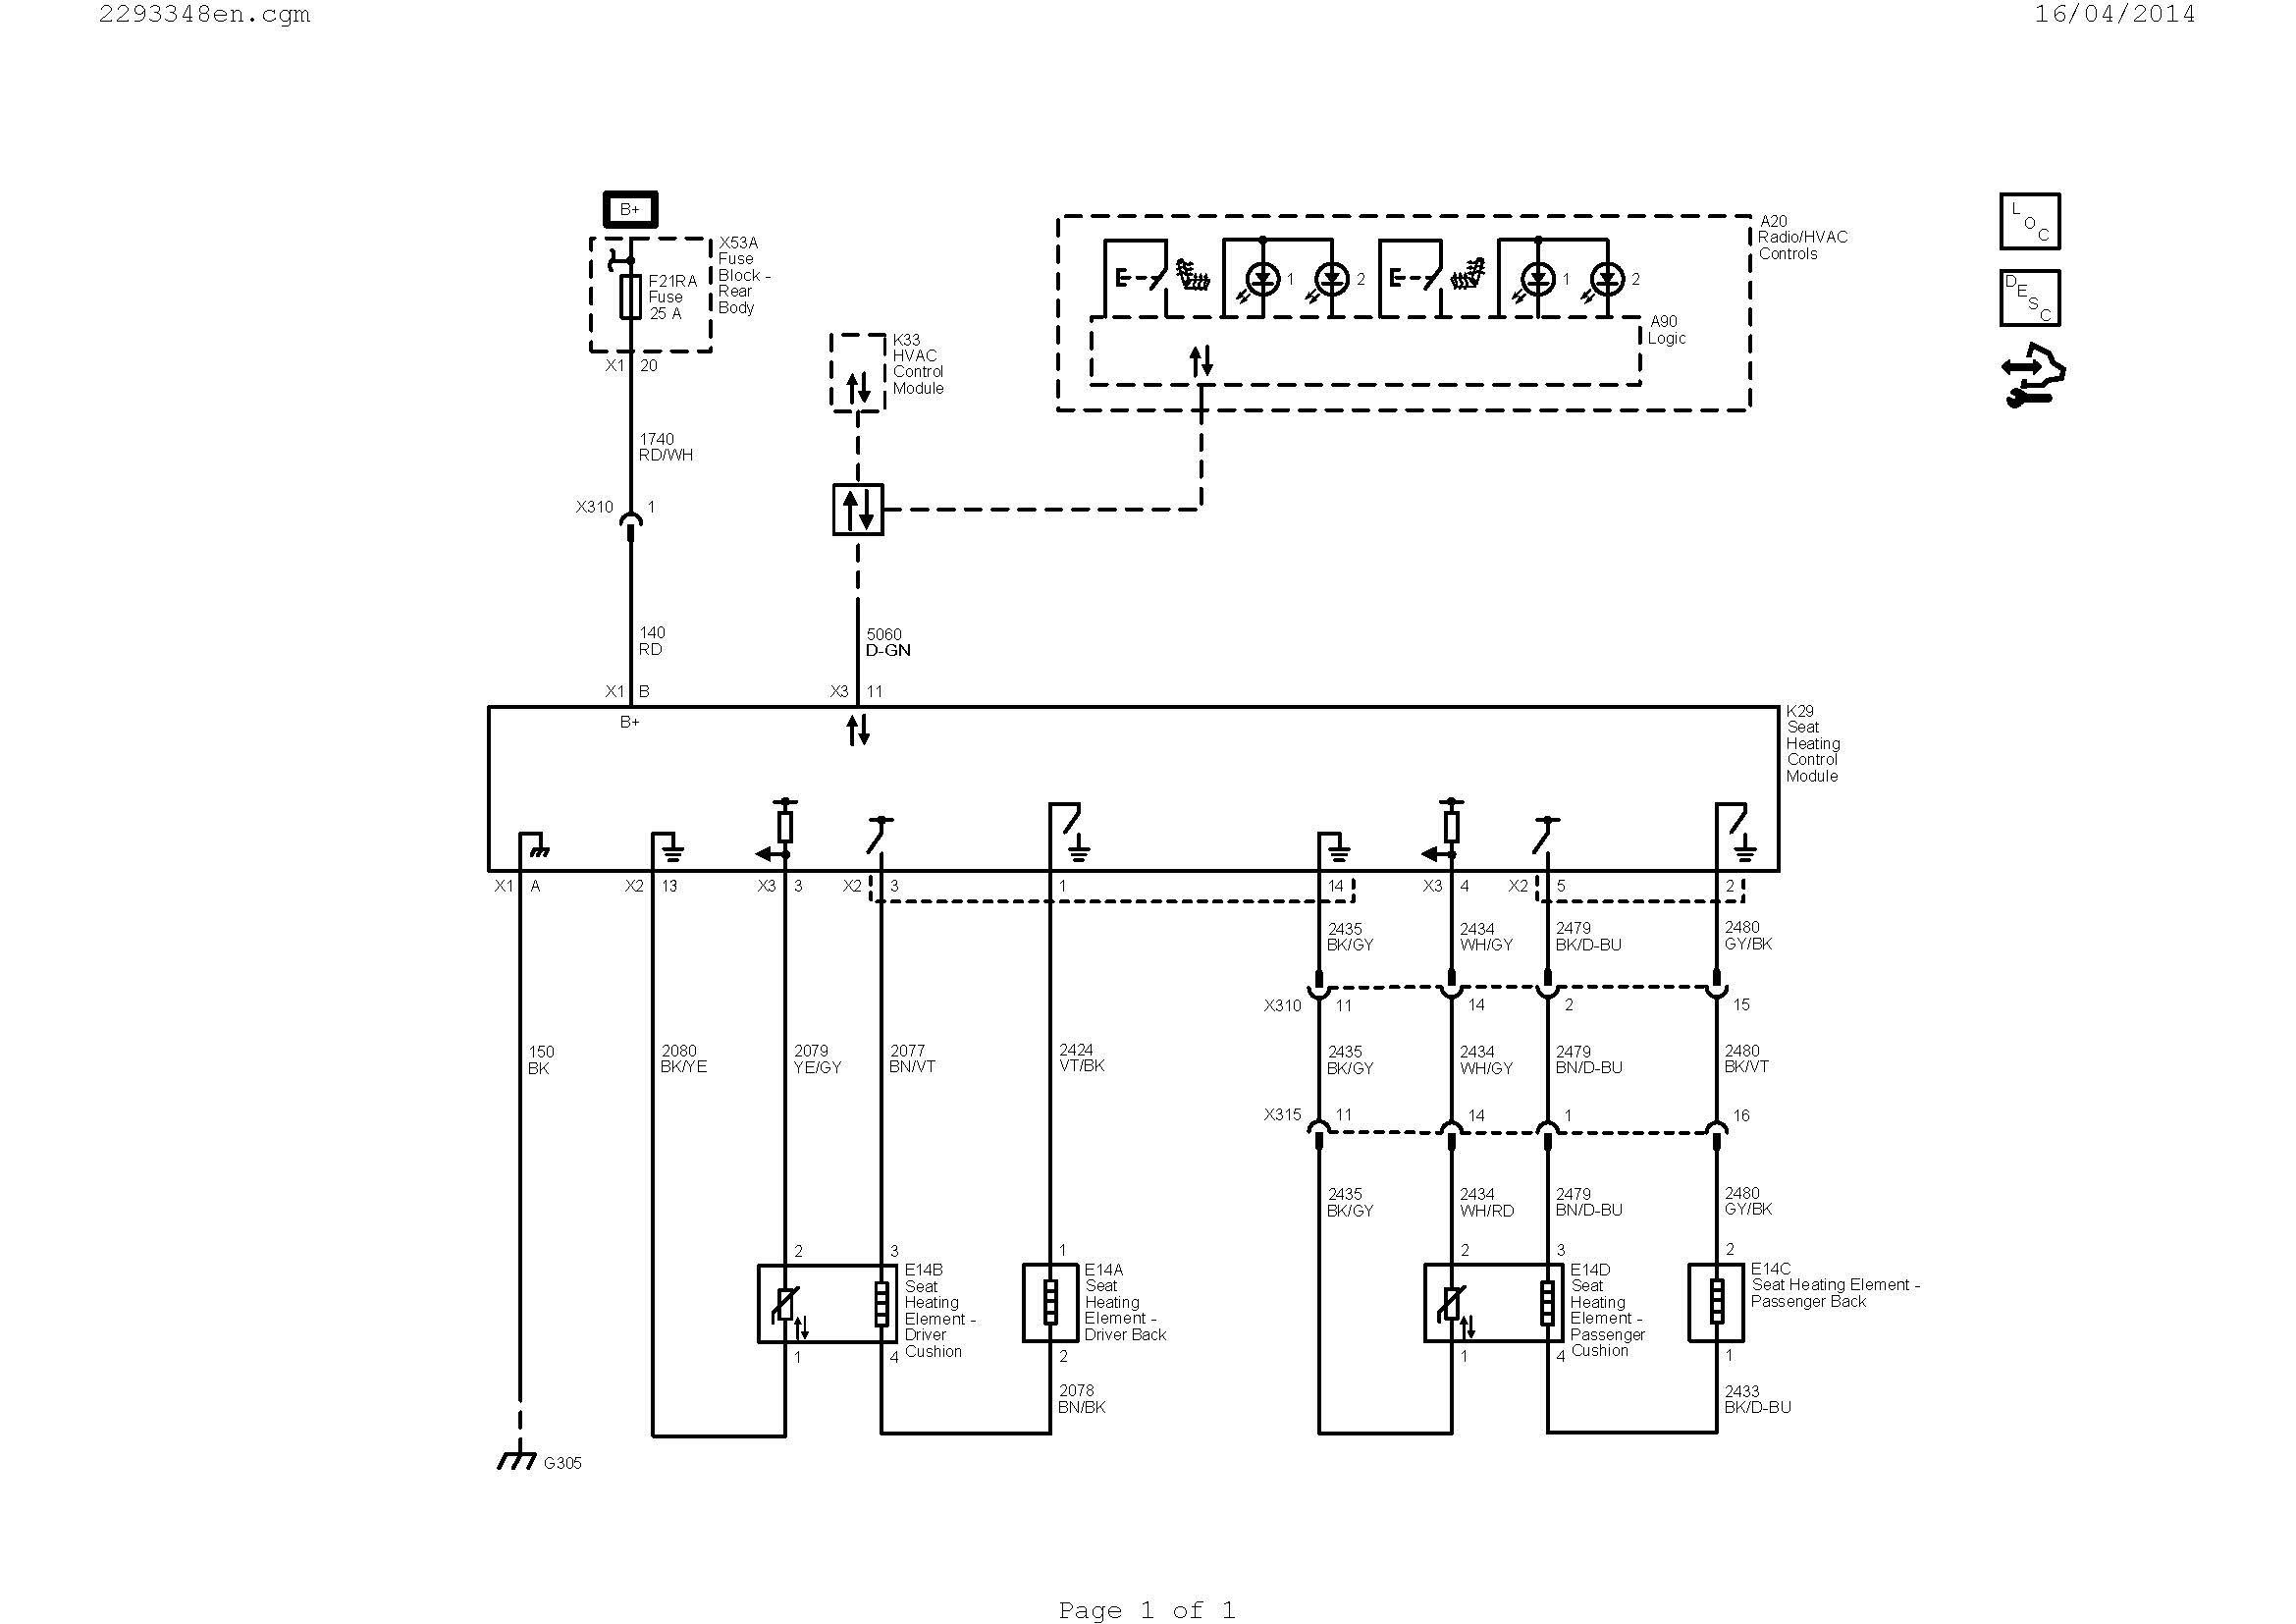 electrical house wiring diagram software Download-Hvac Wiring Diagram software Wiring Diagrams for Electrical New Wiring Diagram Guitar Fresh Hvac Diagram 20-i